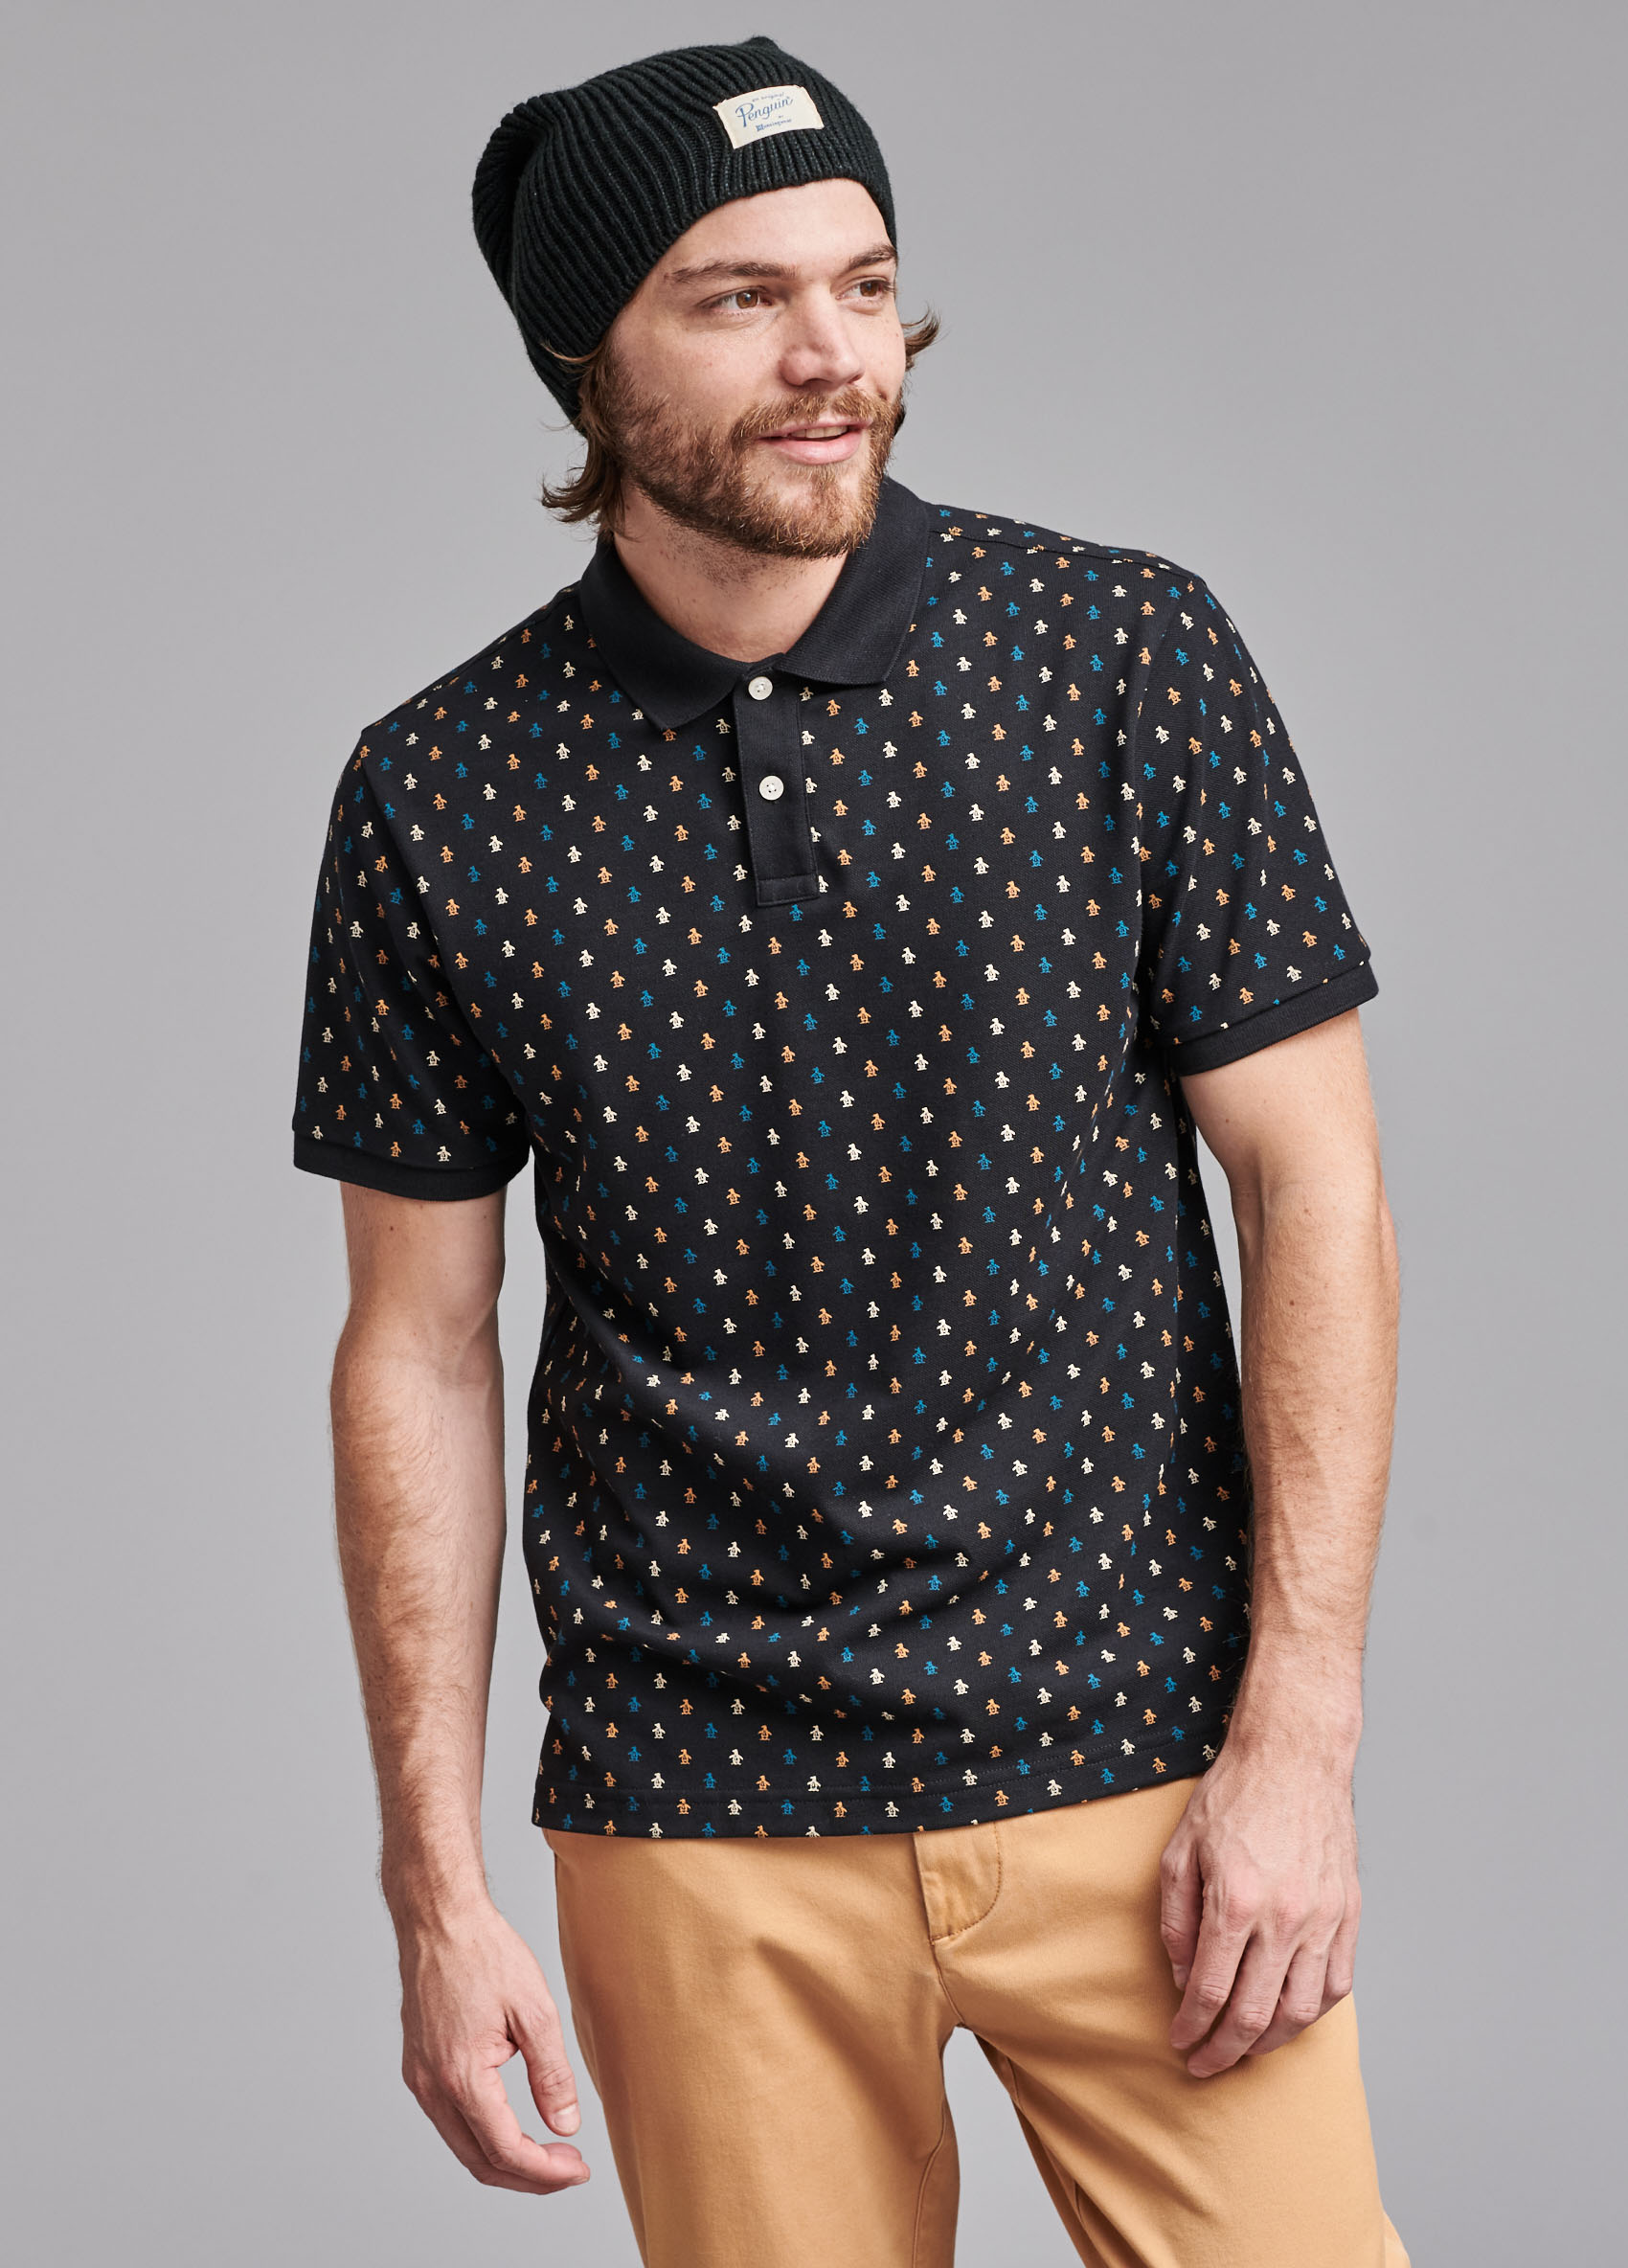 penguin_s/s-re-pete-multicolor-daddy-polo_52-18-2019__picture-9134